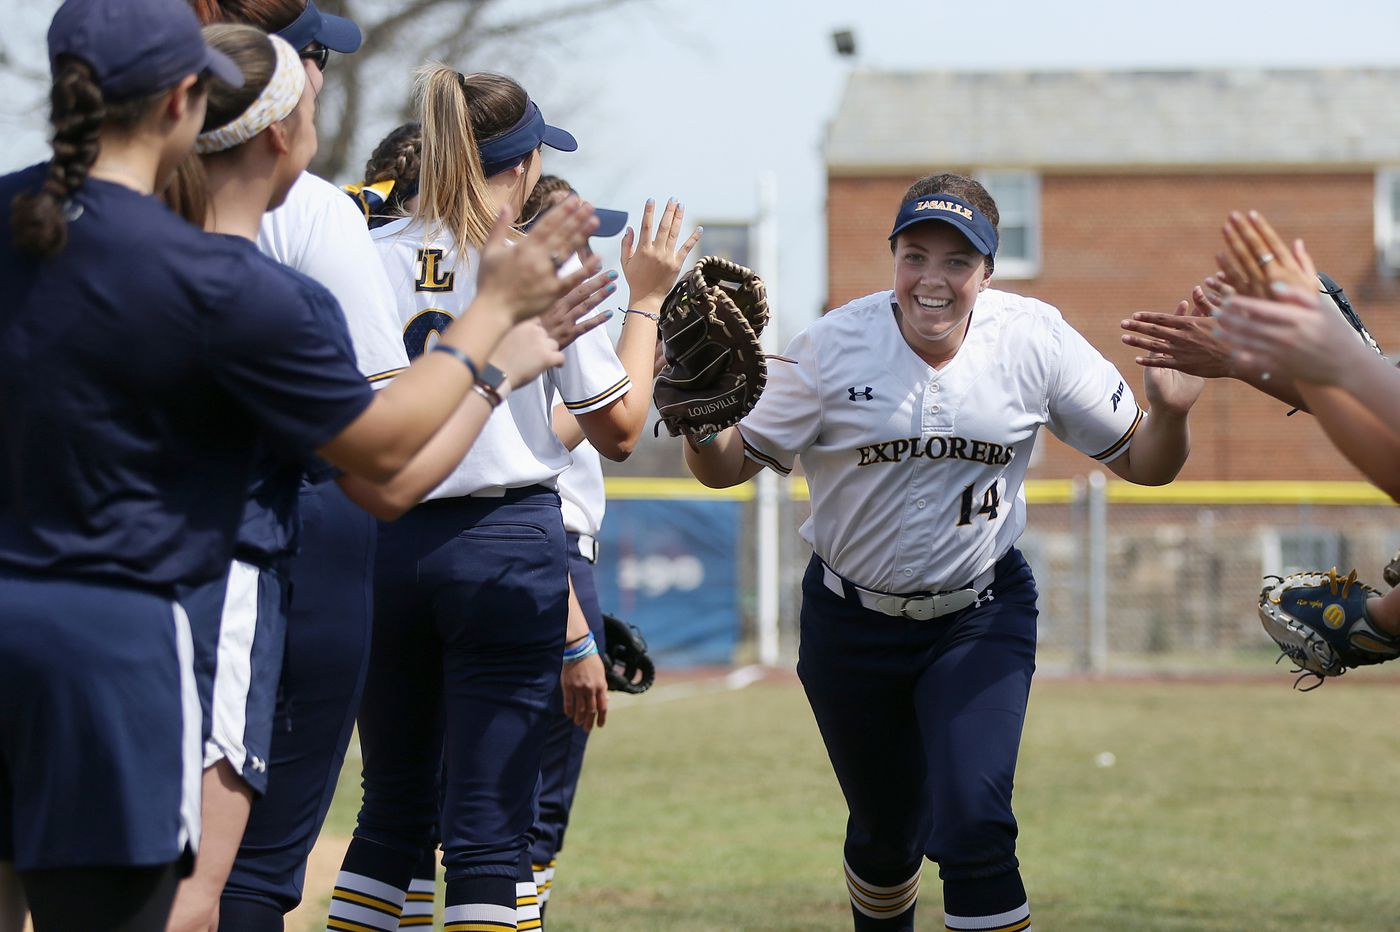 La Salle University's Ashley Mendenhall excels on the softball diamond and in the choir pews